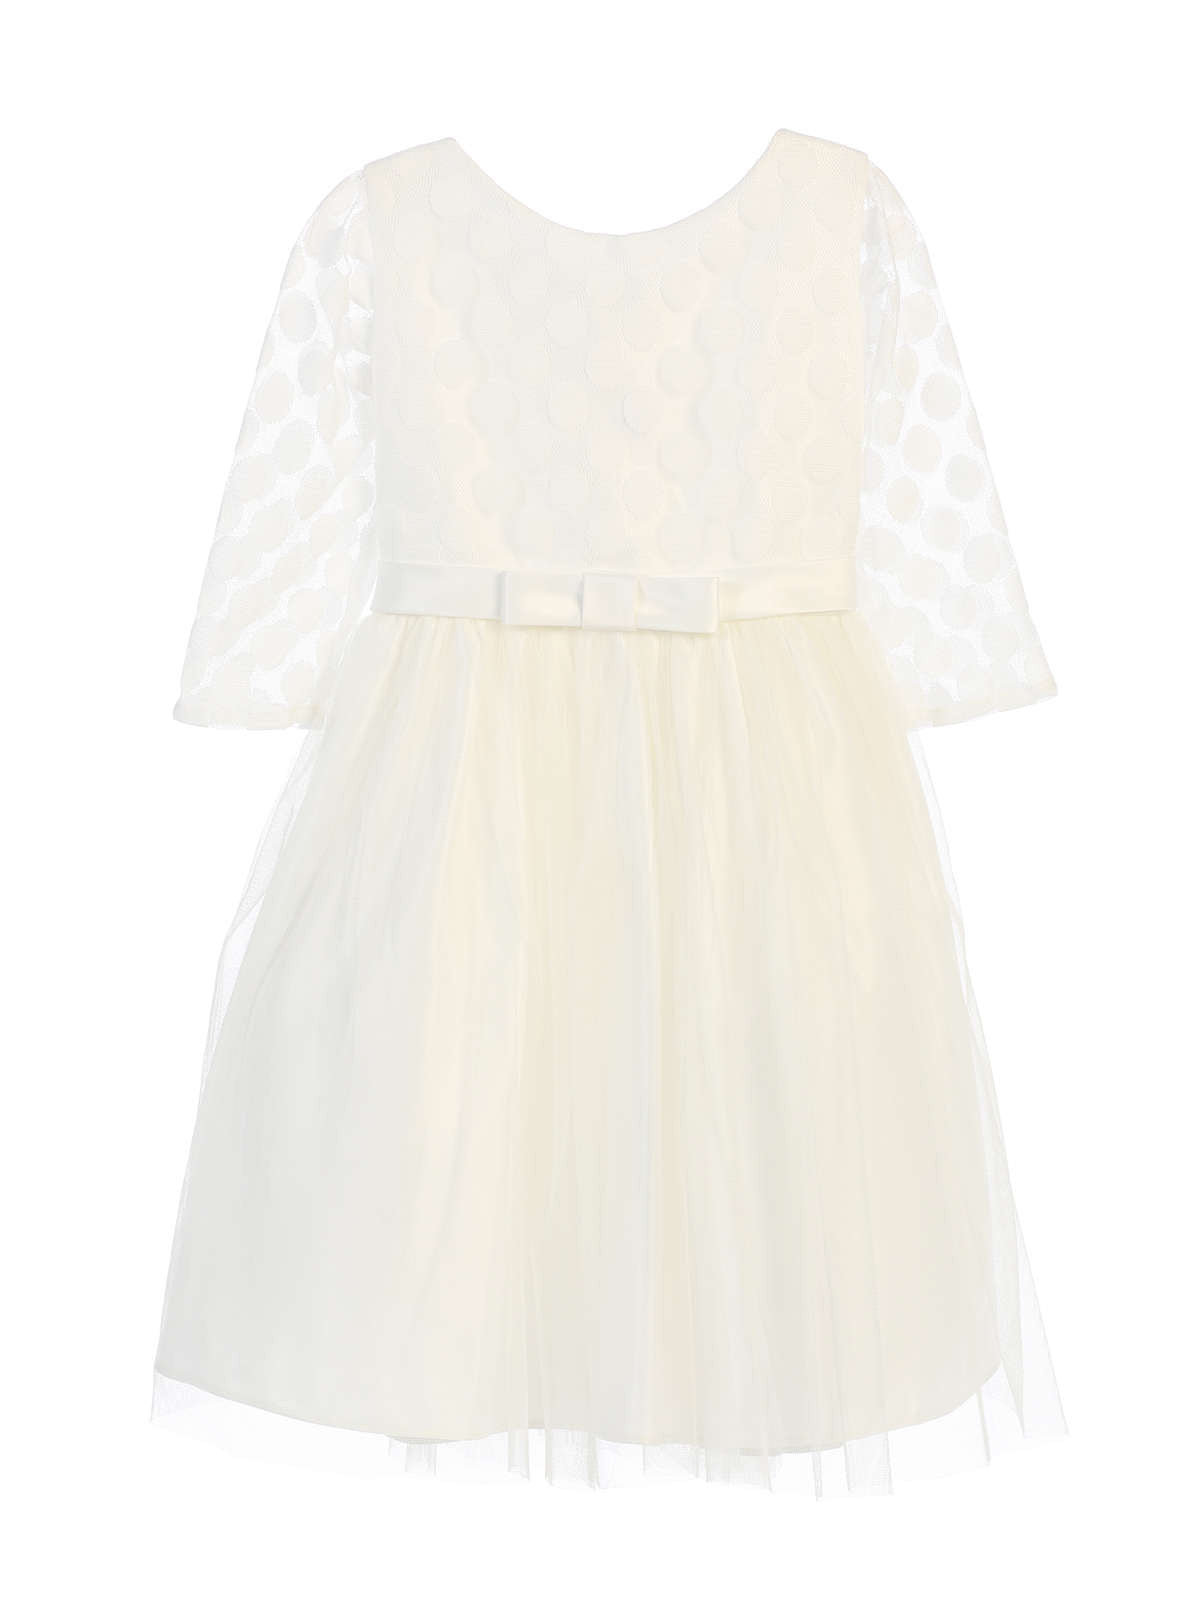 Sweet Kids Polka Dot Mesh Satin Dress - Off White, SK680